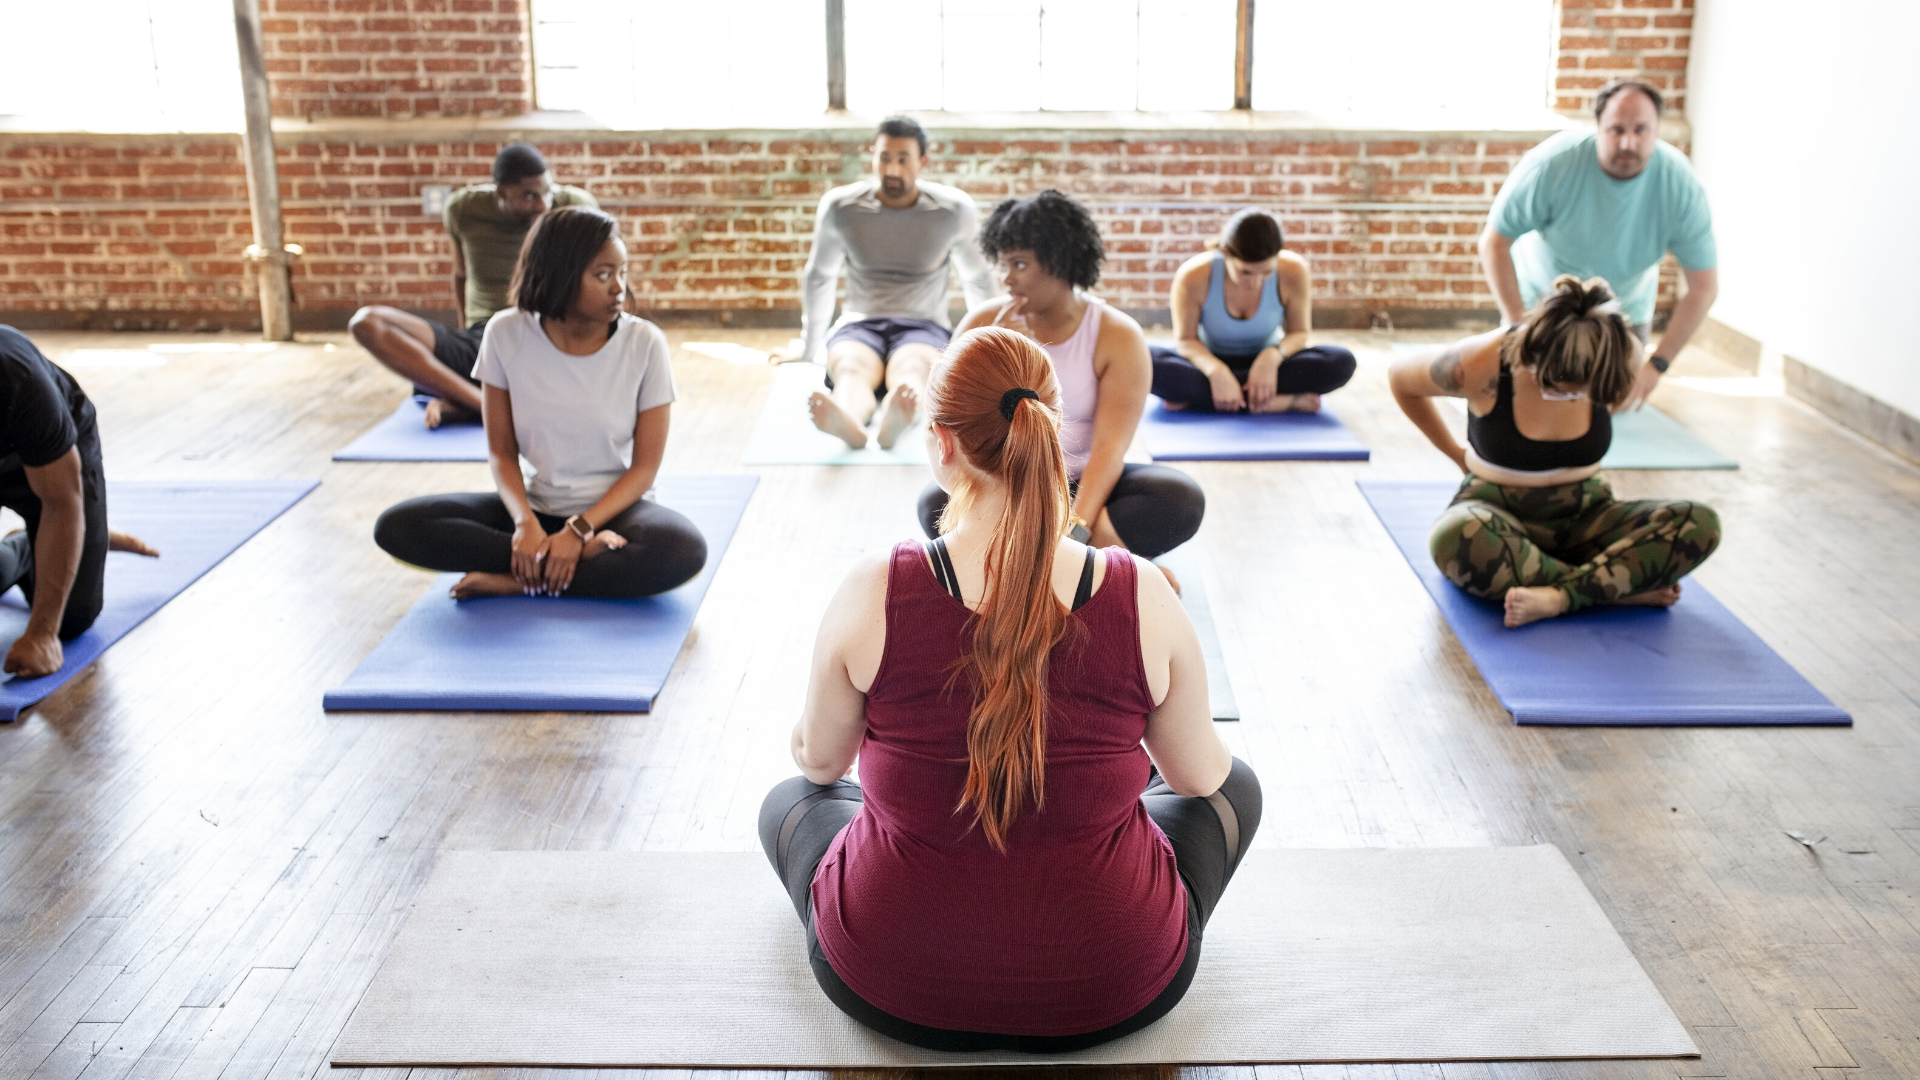 group_of_diverse_yoga_students